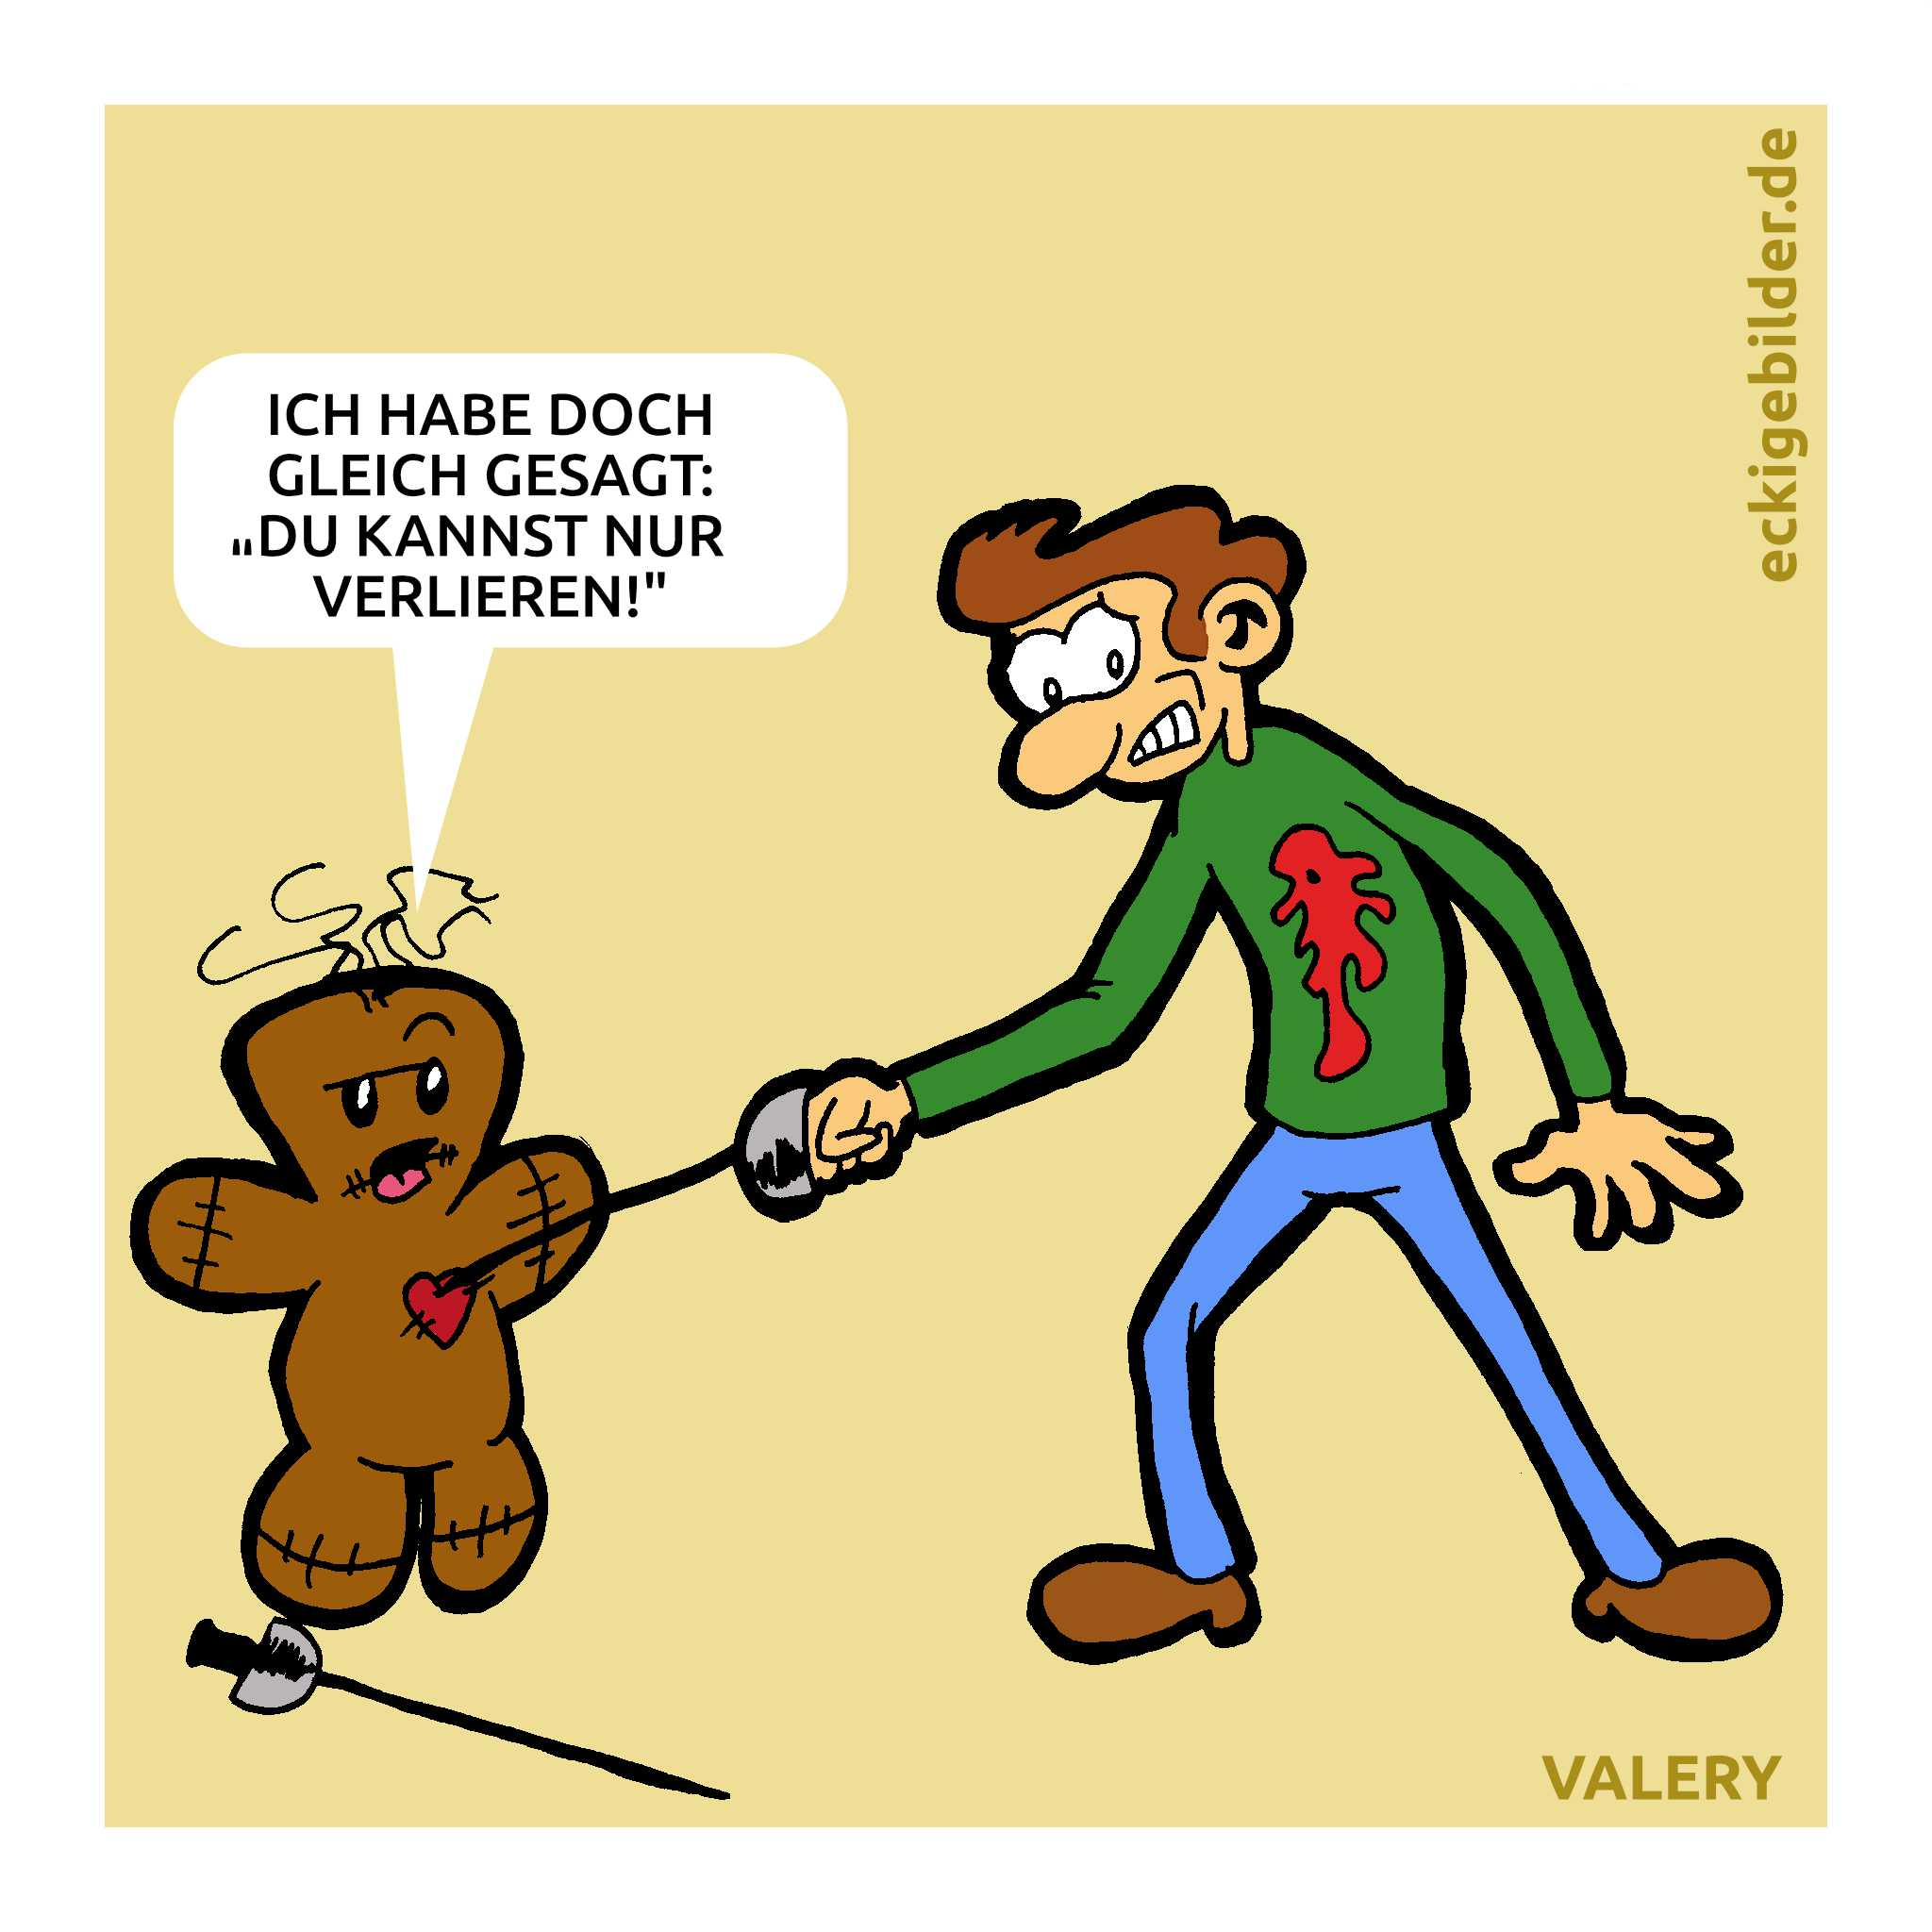 Voodoo-Puppe Fechten Cartoon